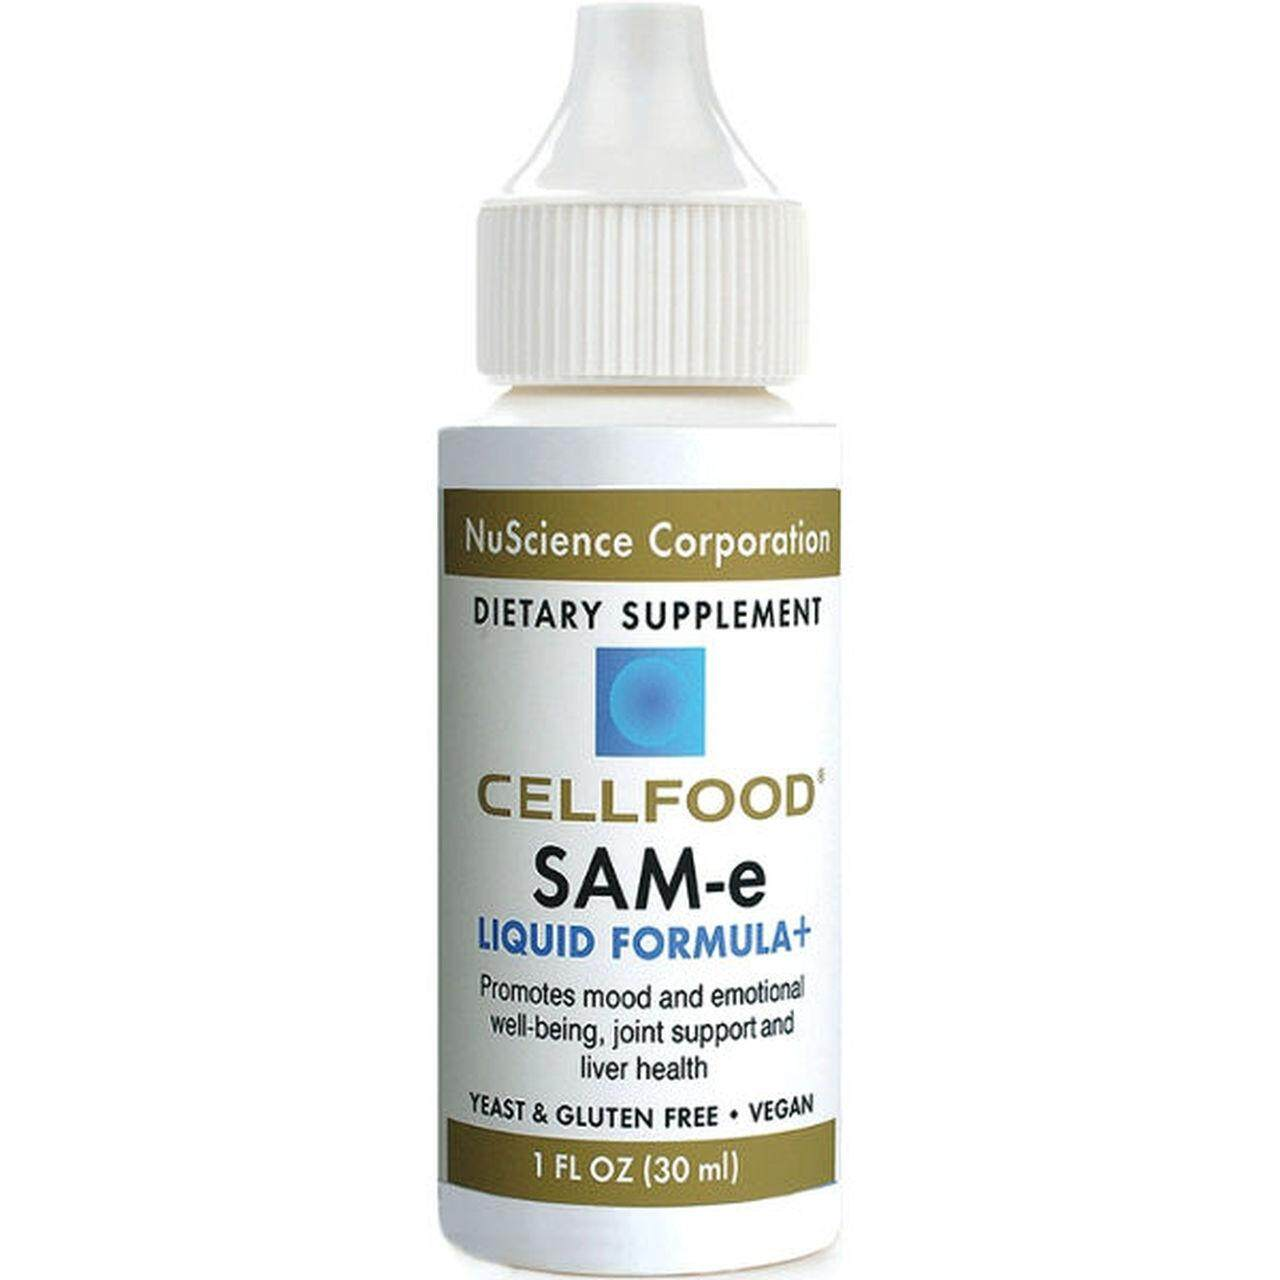 Cellfood Nuscience SAM-e 1 bottle Complete with box and catalog.0122083222